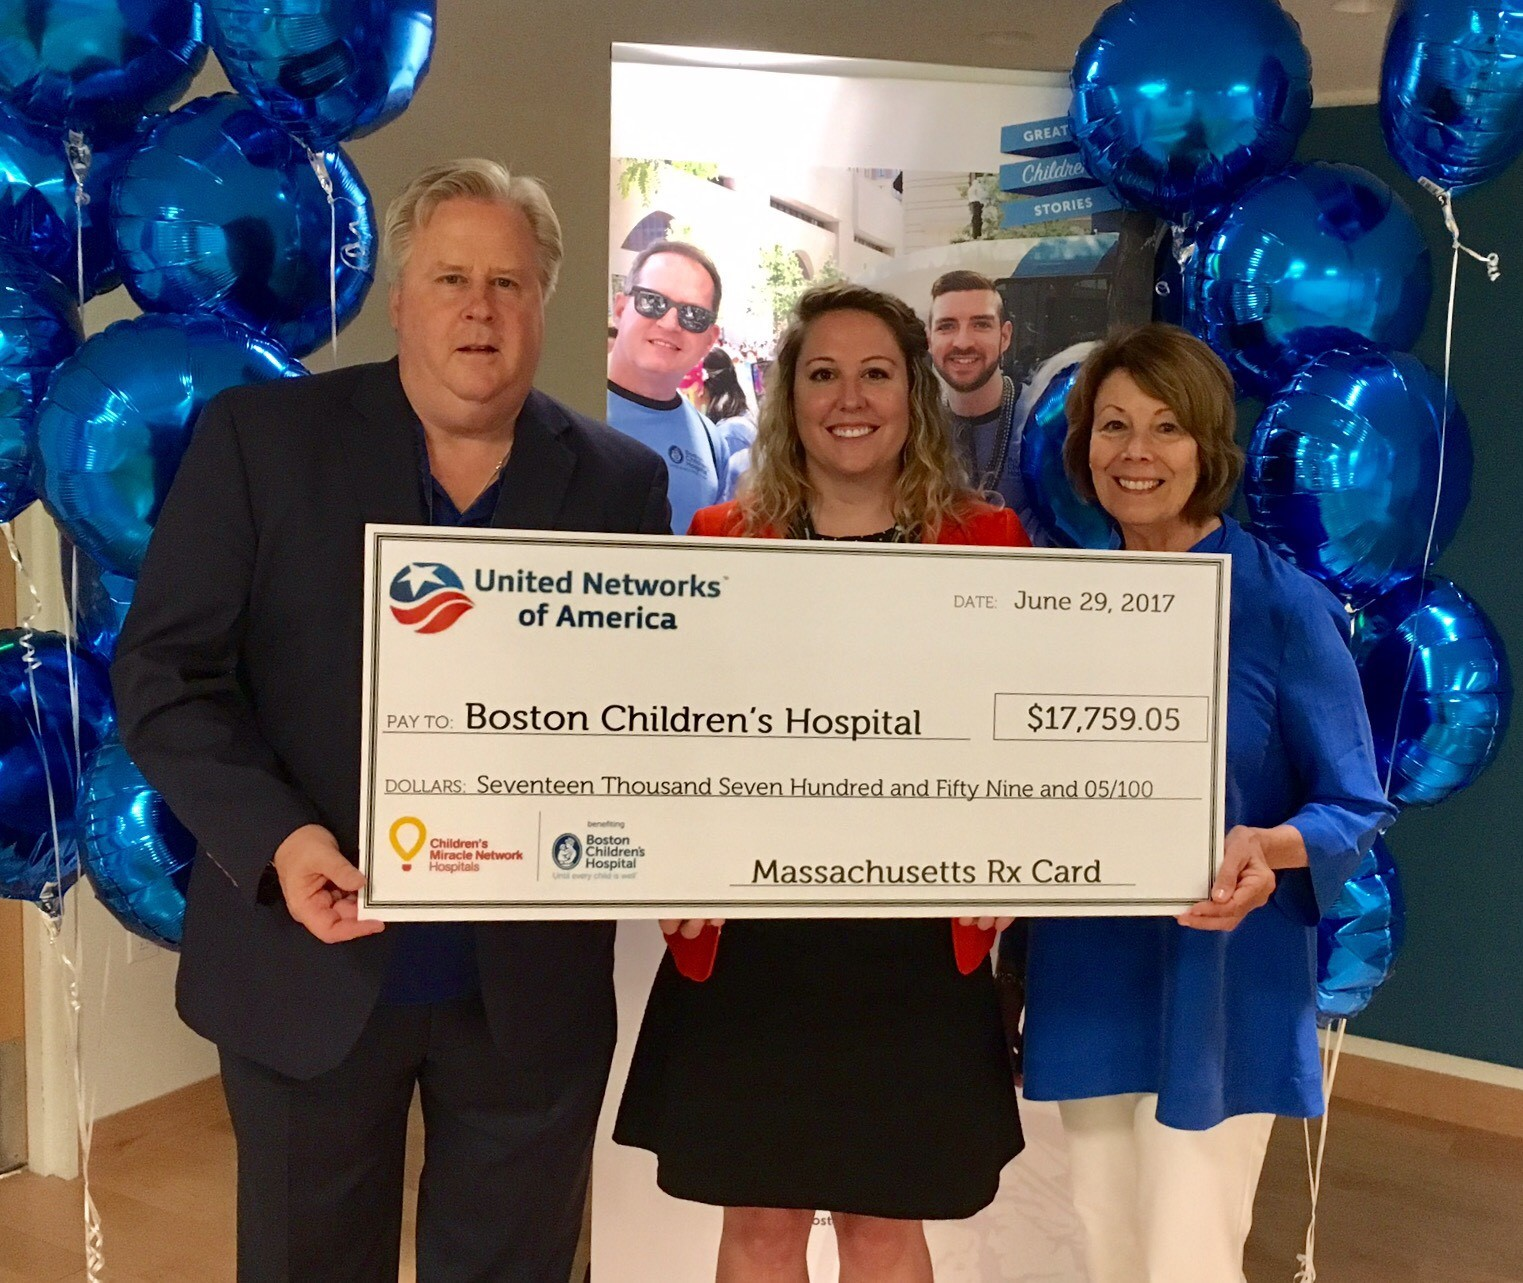 Massachusetts Drug Card donates to Boston Childrens Hospital